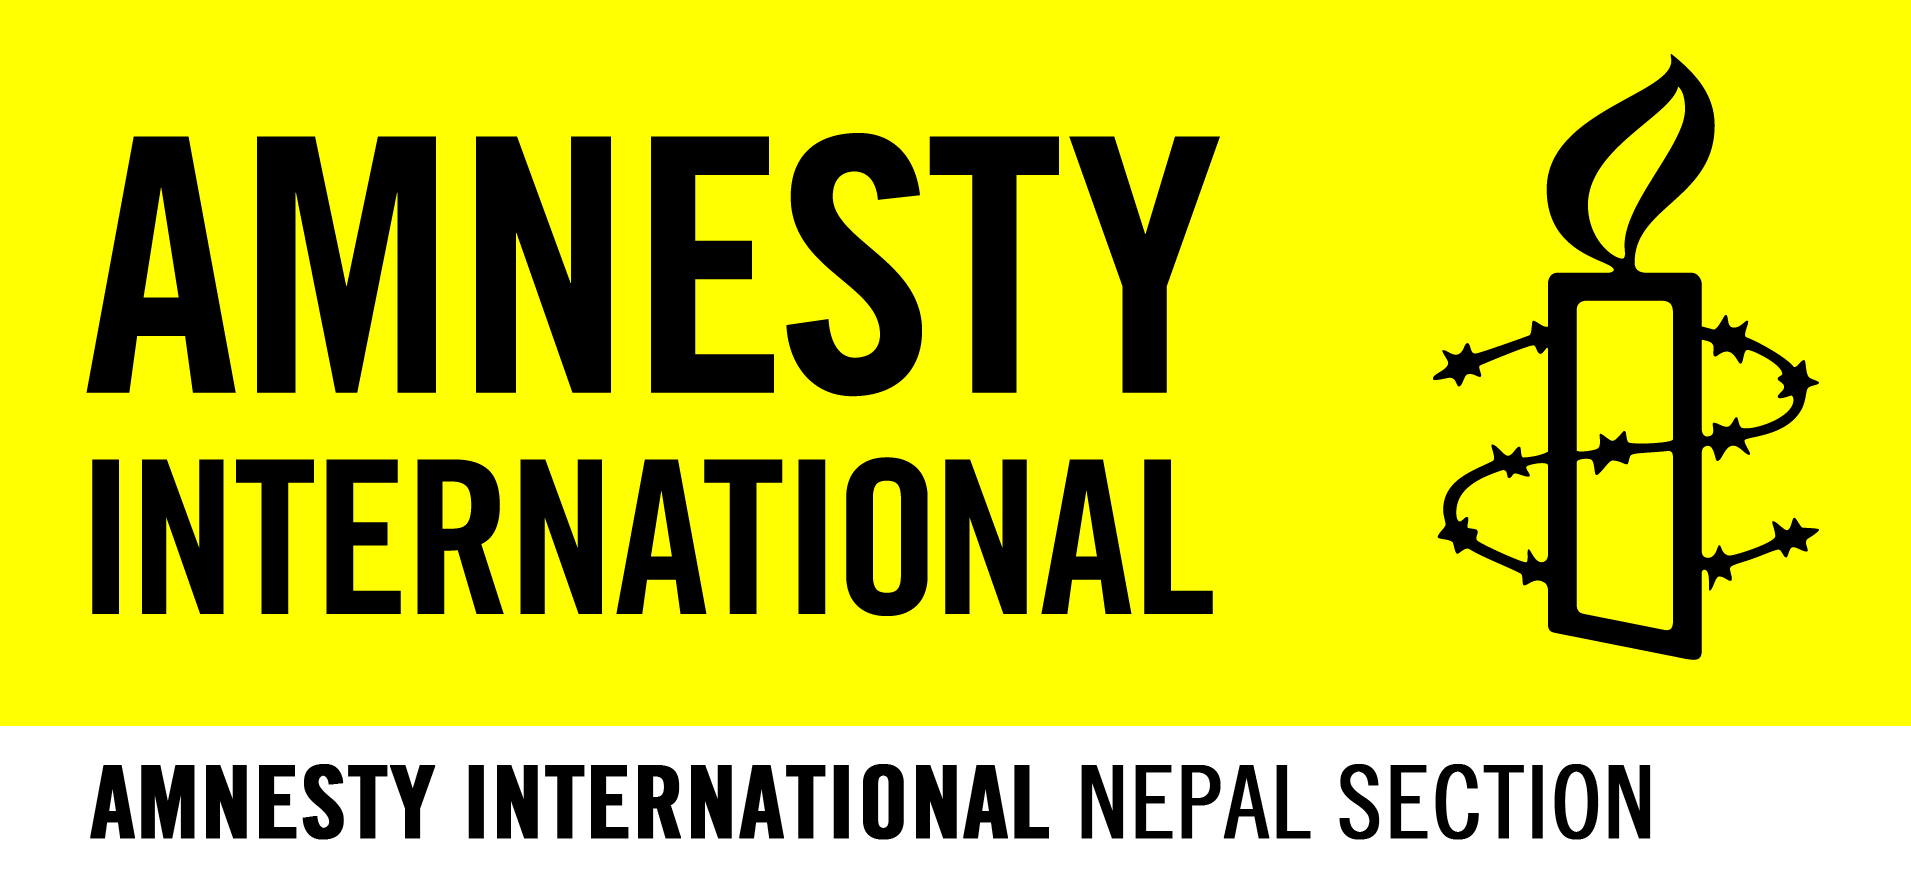 AI Nepal urges for guaranteeing freedom of expression